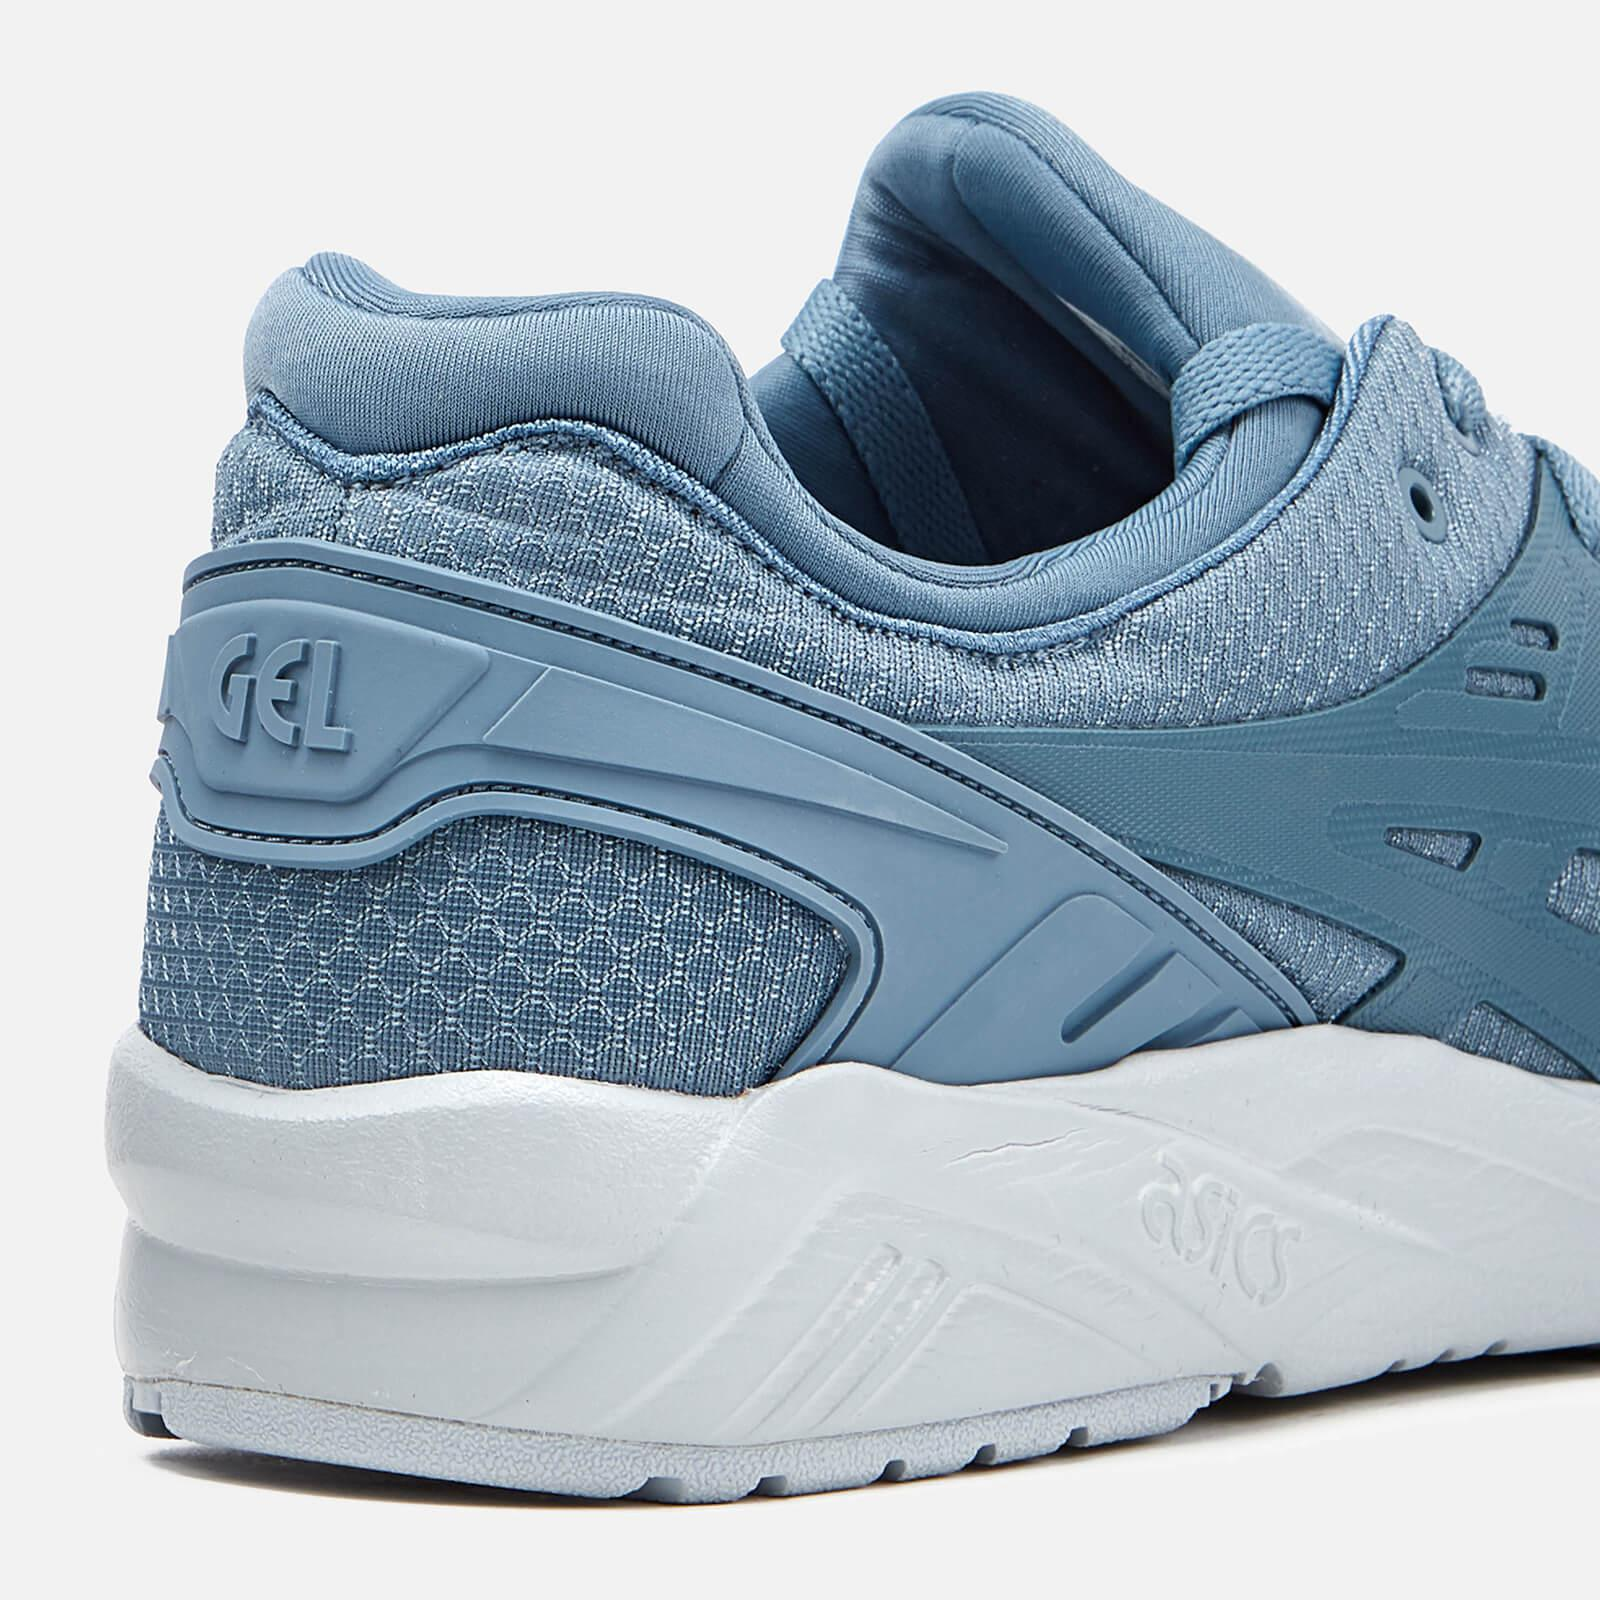 finest selection 680c2 9f9a1 Lyst - Asics Gel-kayano Evo Mesh Trainers in Blue for Men